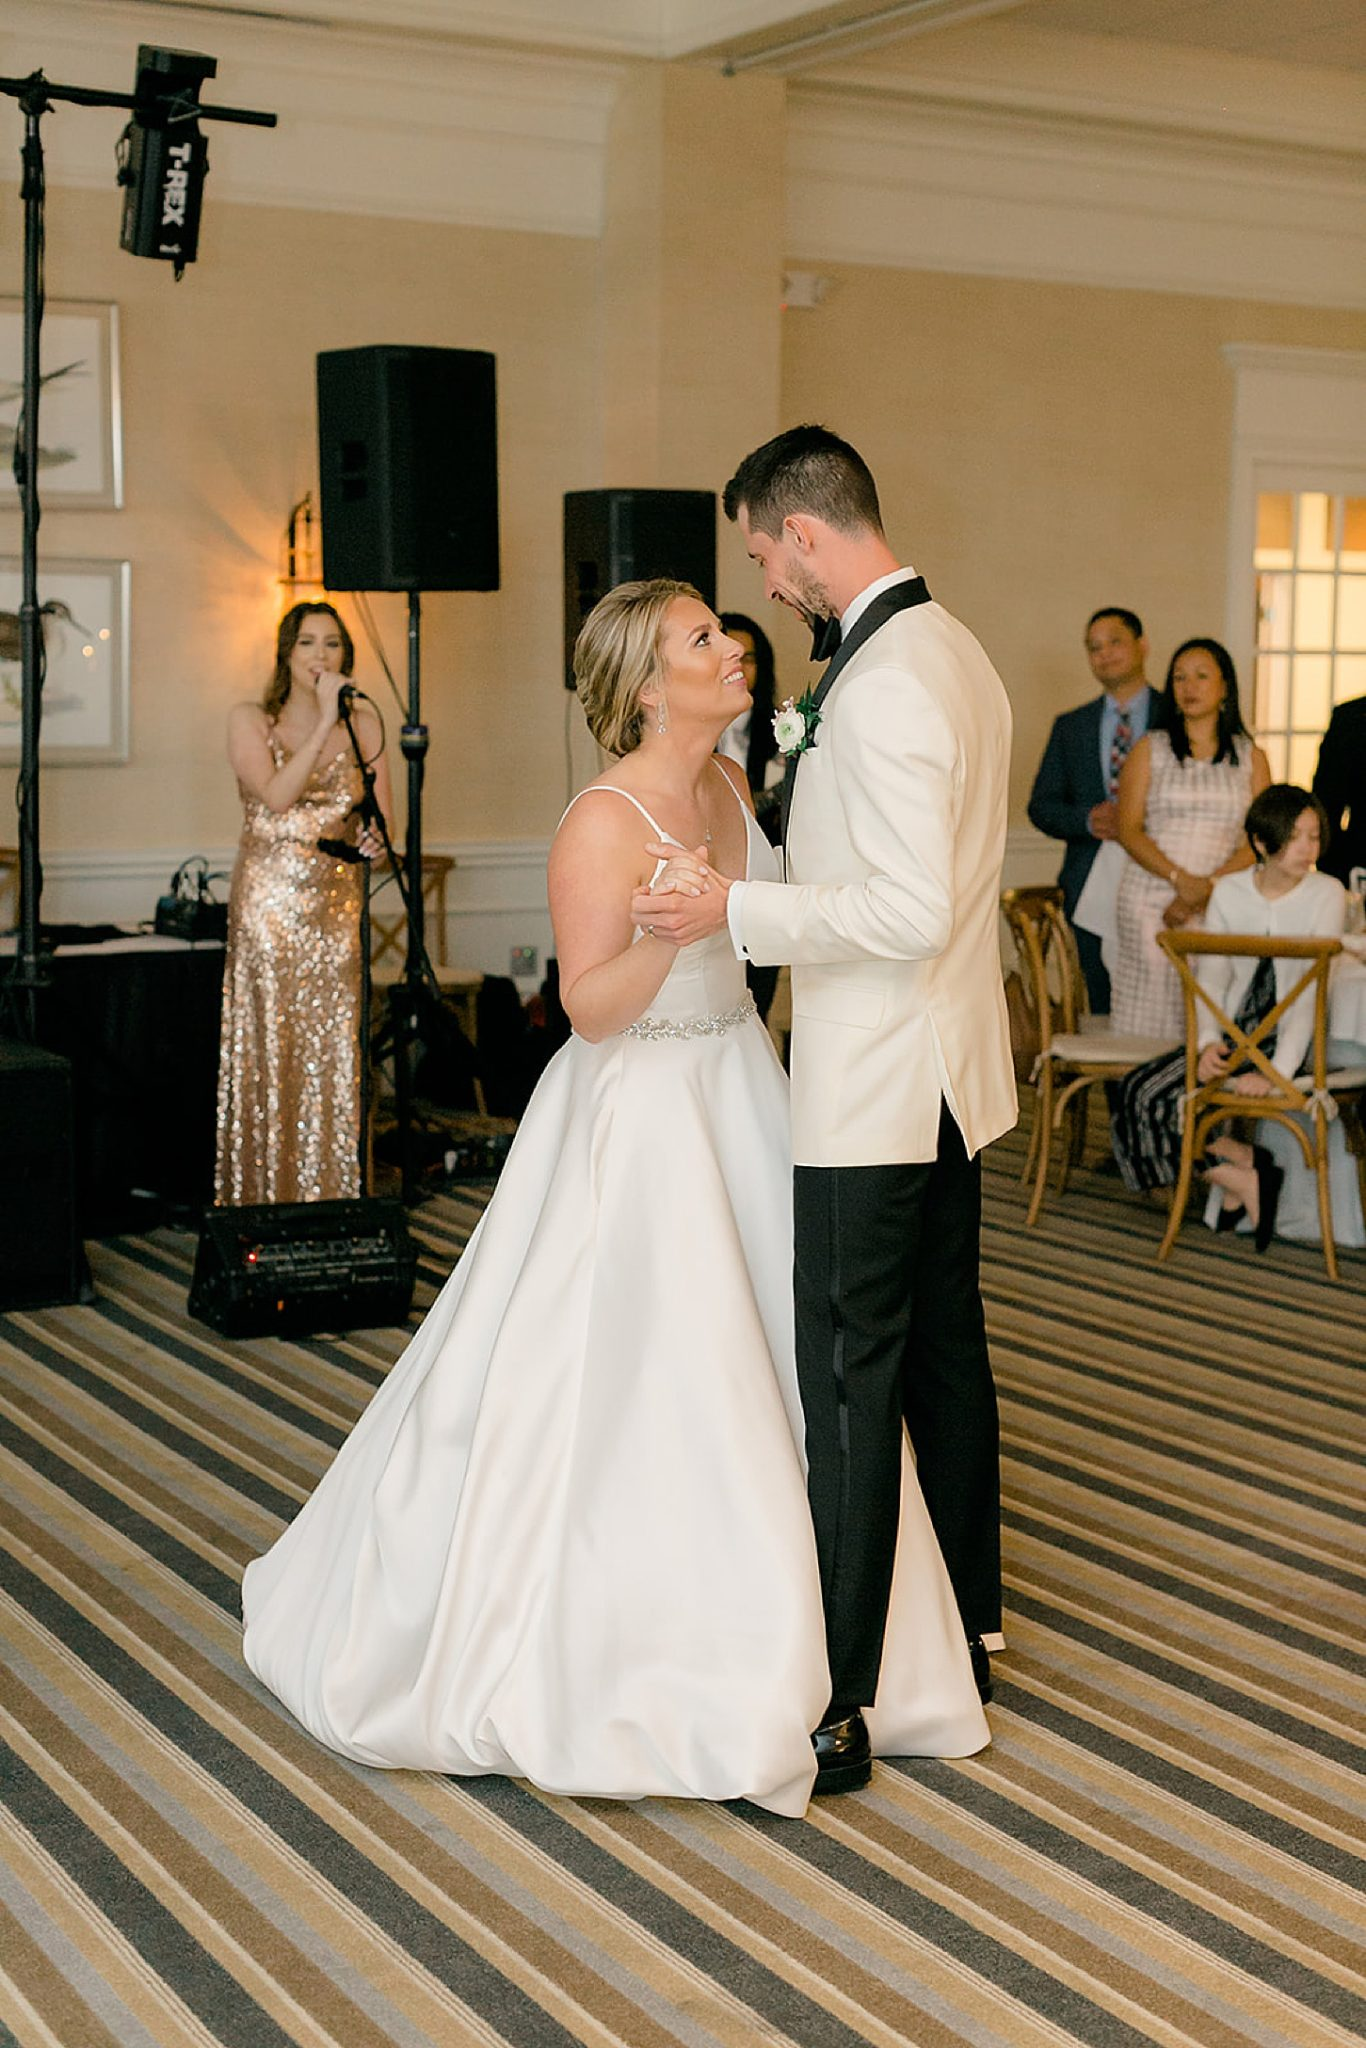 Linwood Country Club Summer Wedding Photography Studio by Magdalena Studios Jenn Kyle 0059 scaled